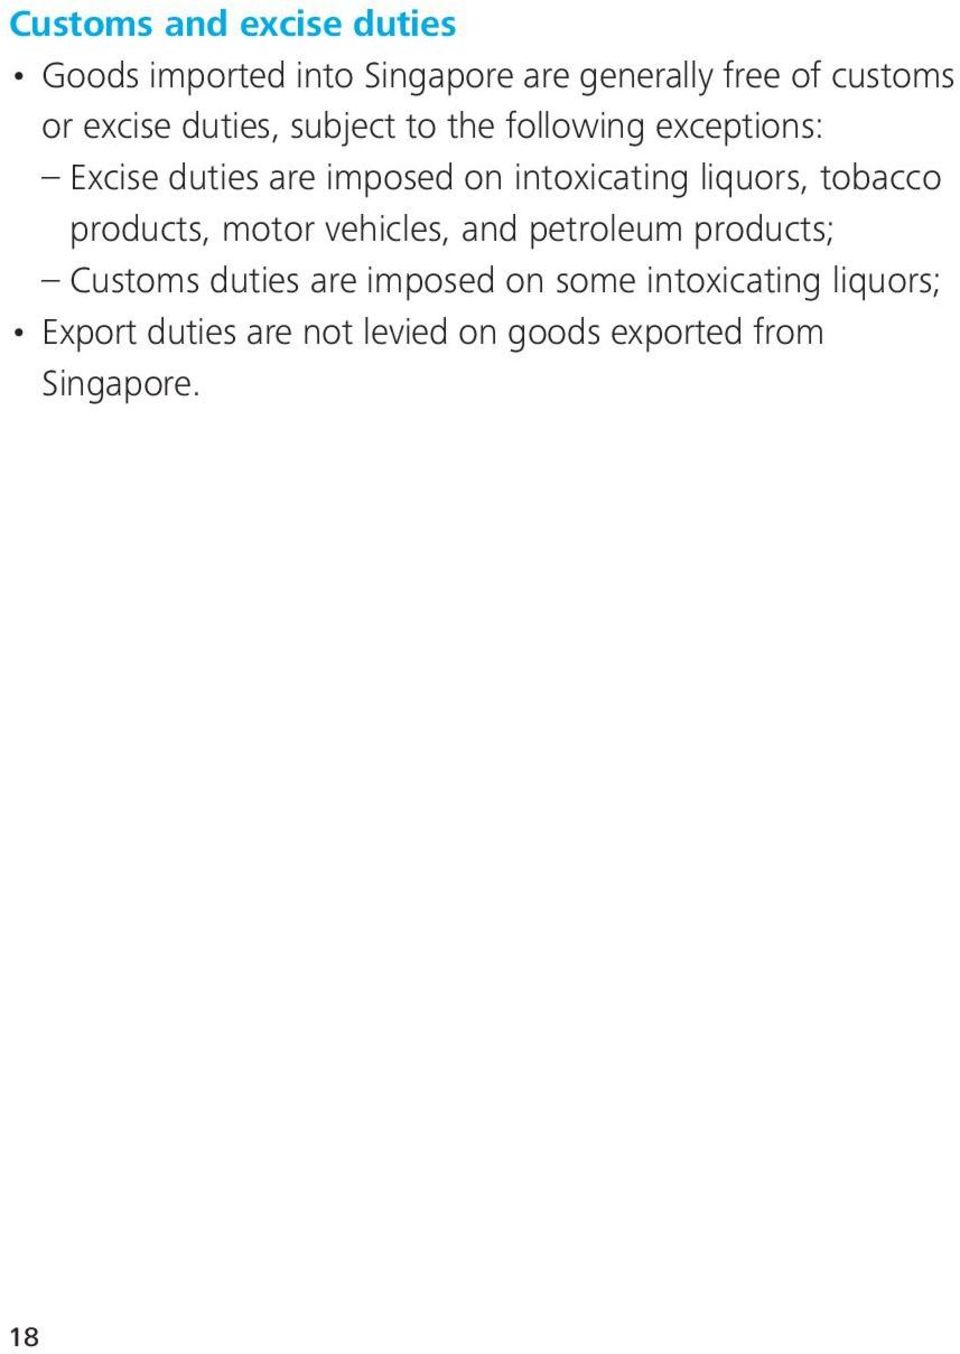 intoxicating liquors, tobacco products, motor vehicles, and petroleum products; Customs